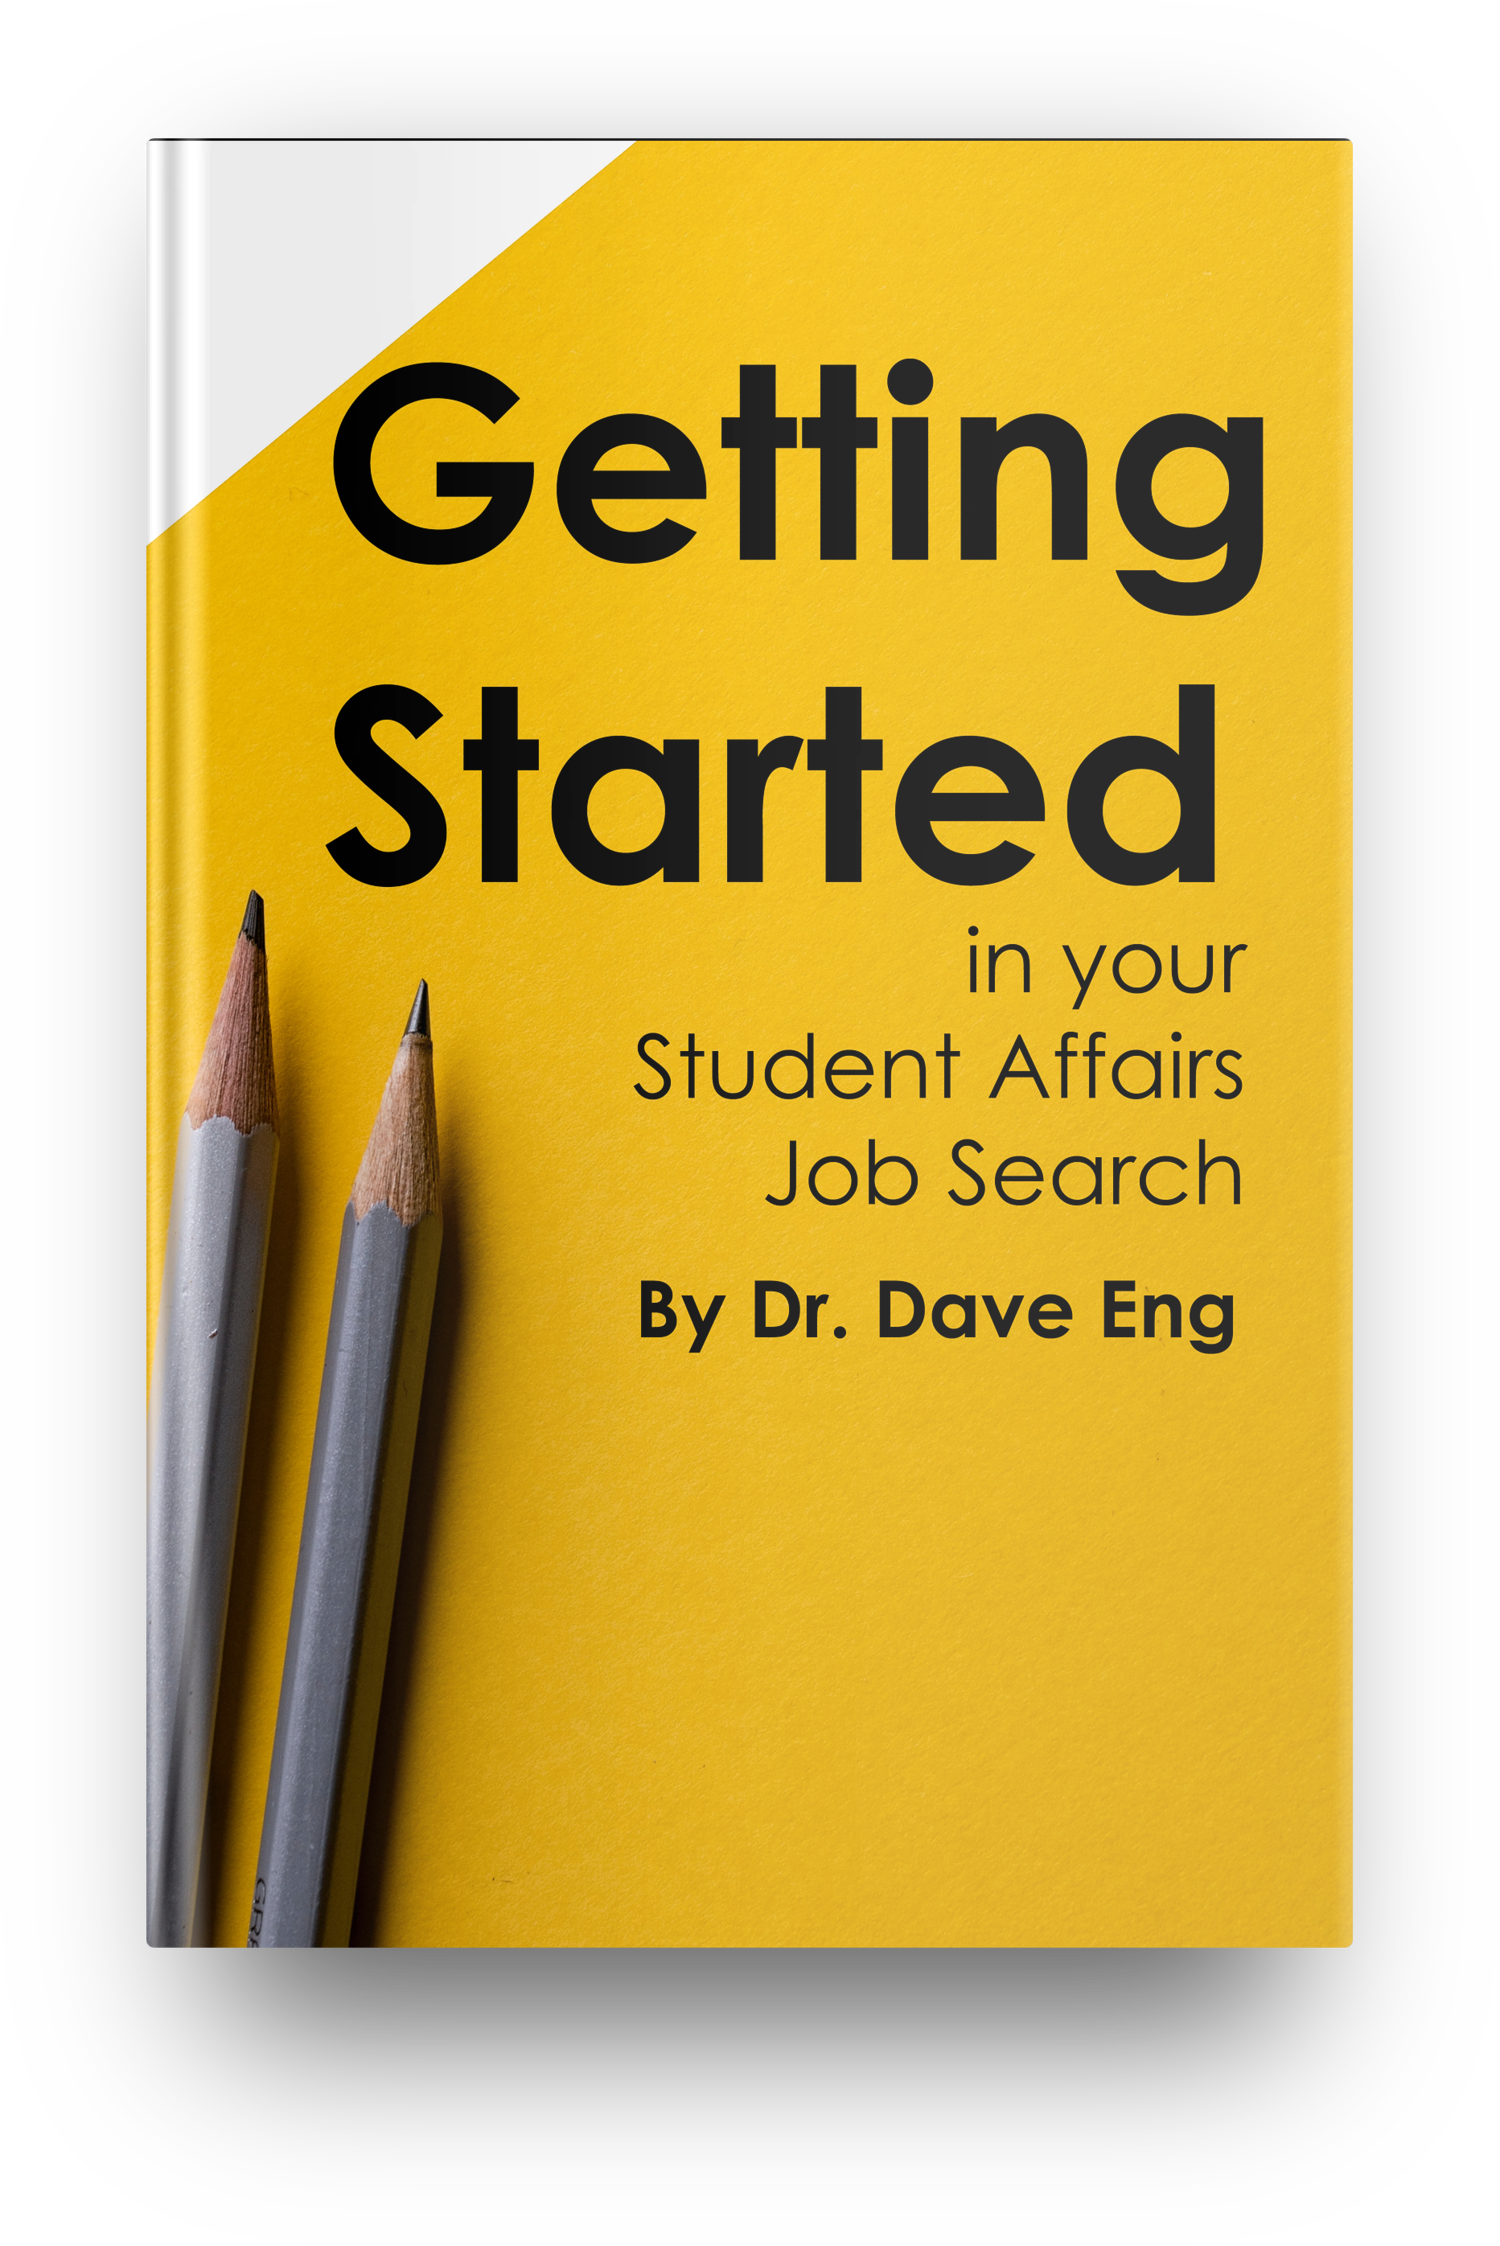 Getting Started in your Student Affairs Job Search - Download the FREE eBook